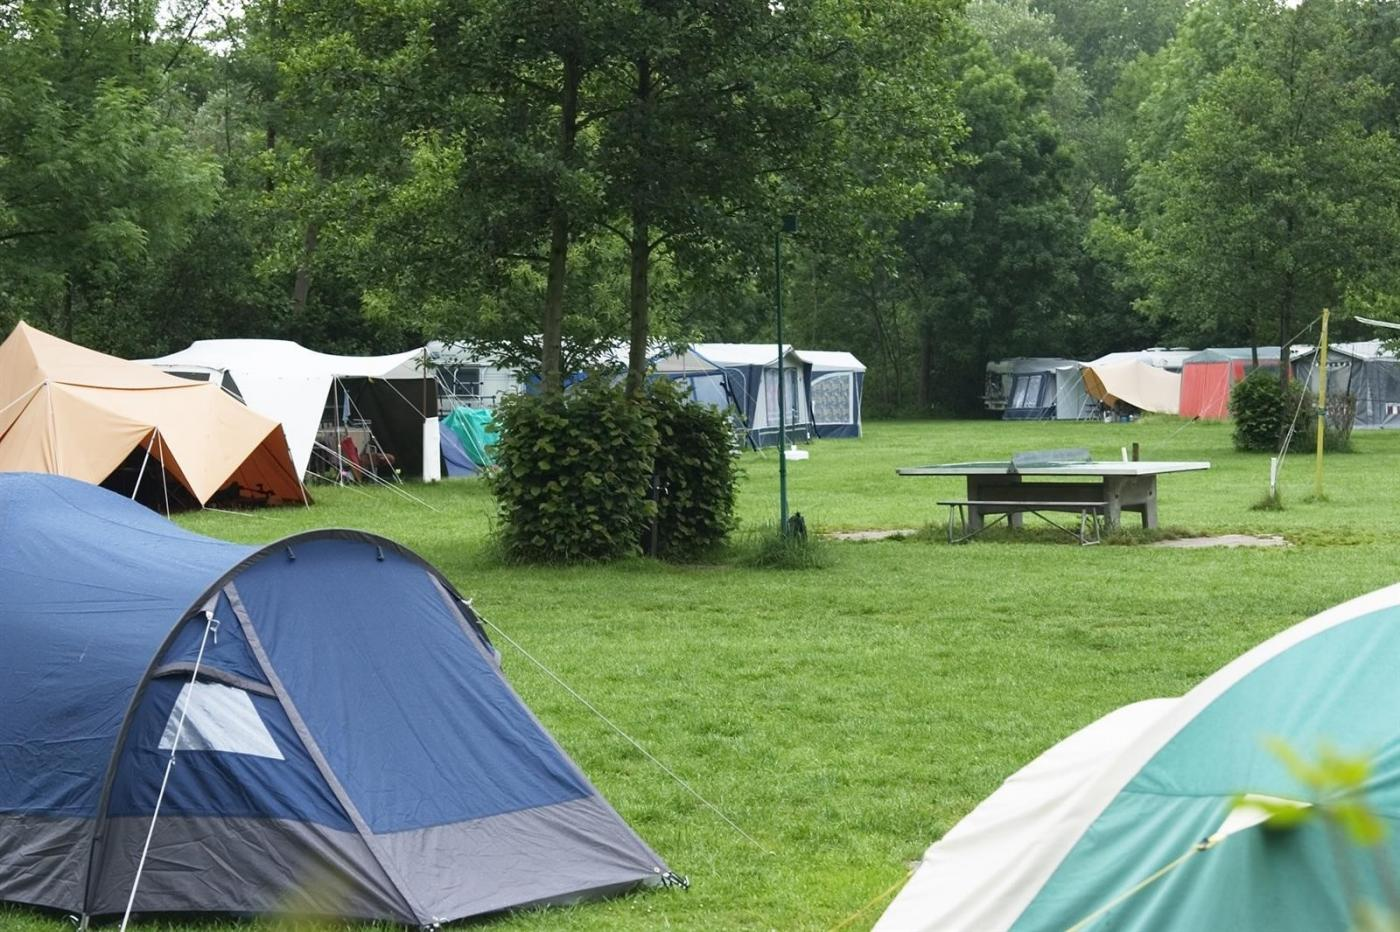 Campings. A. I.